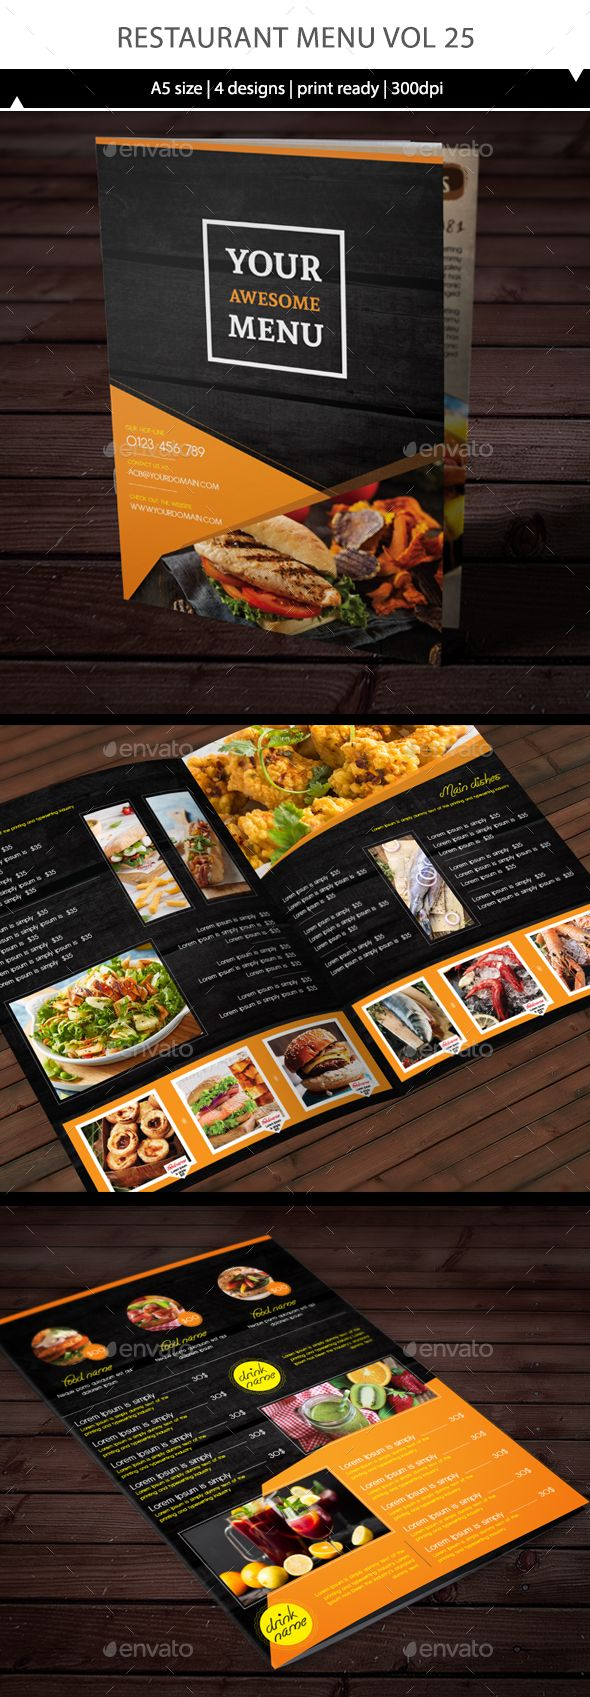 Restaurant Menu Vol 25 u2014 Vector EPS